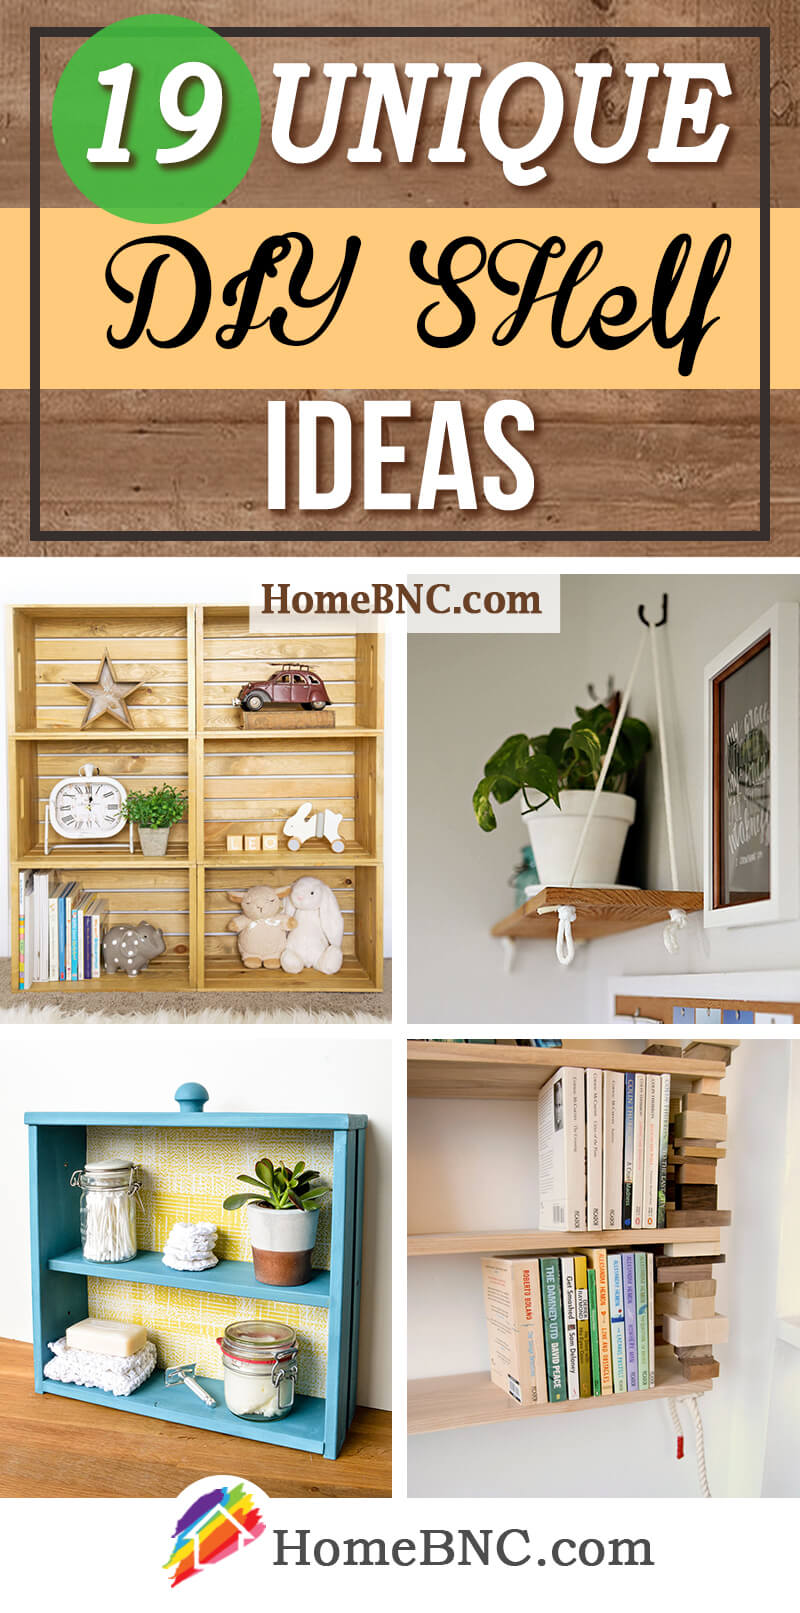 Unique DIY Shelf Ideas